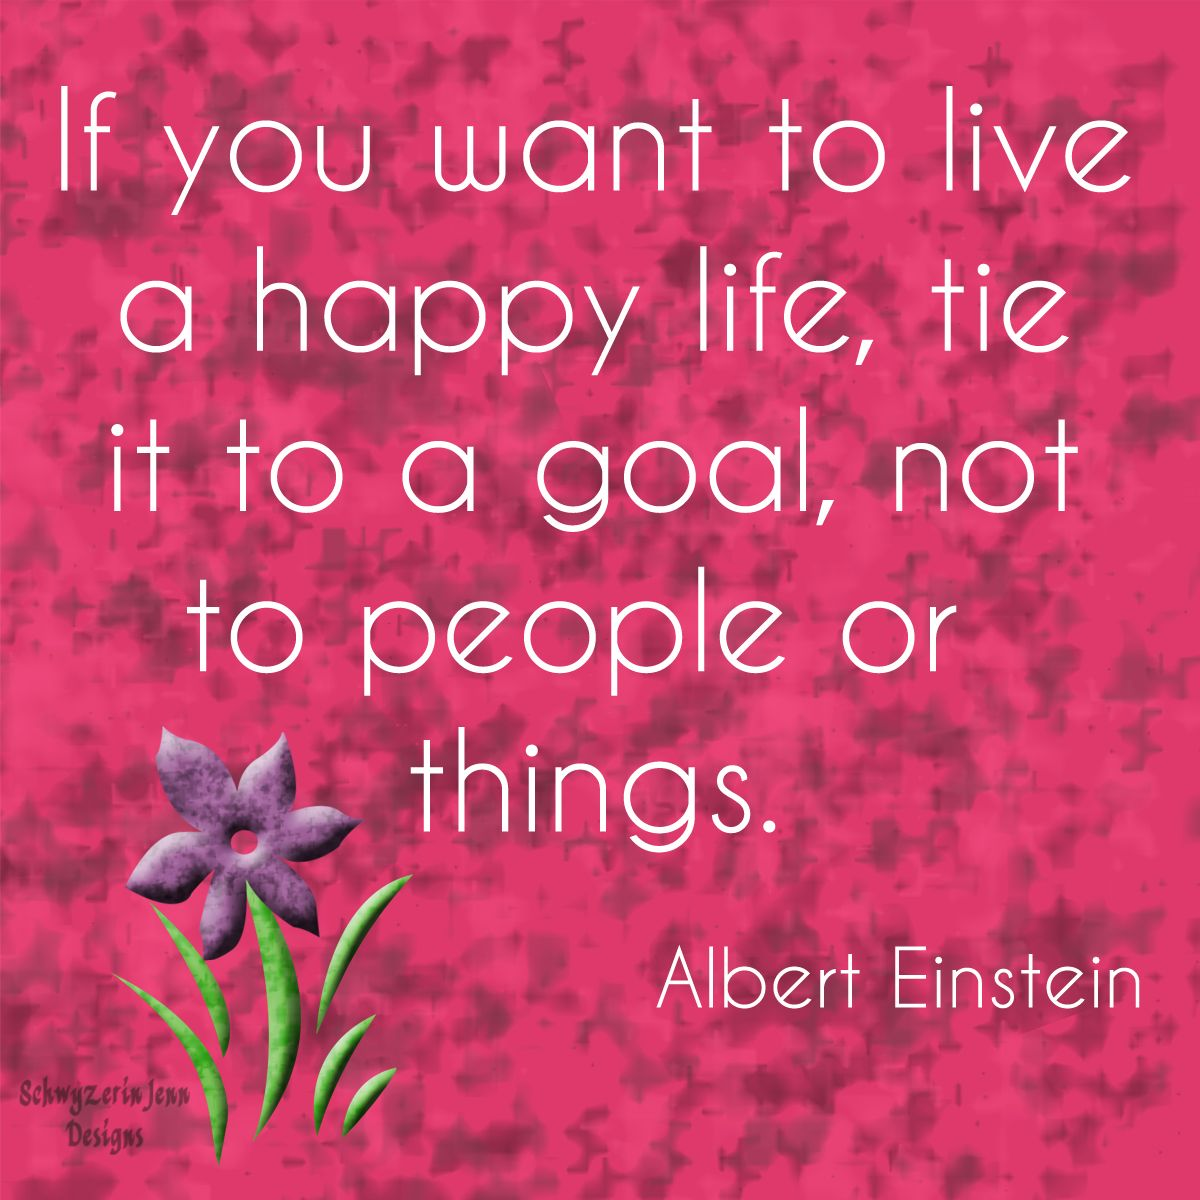 Happy Life Quotes Happy Quotes To Share On Facebook  How To Have A Happy Life